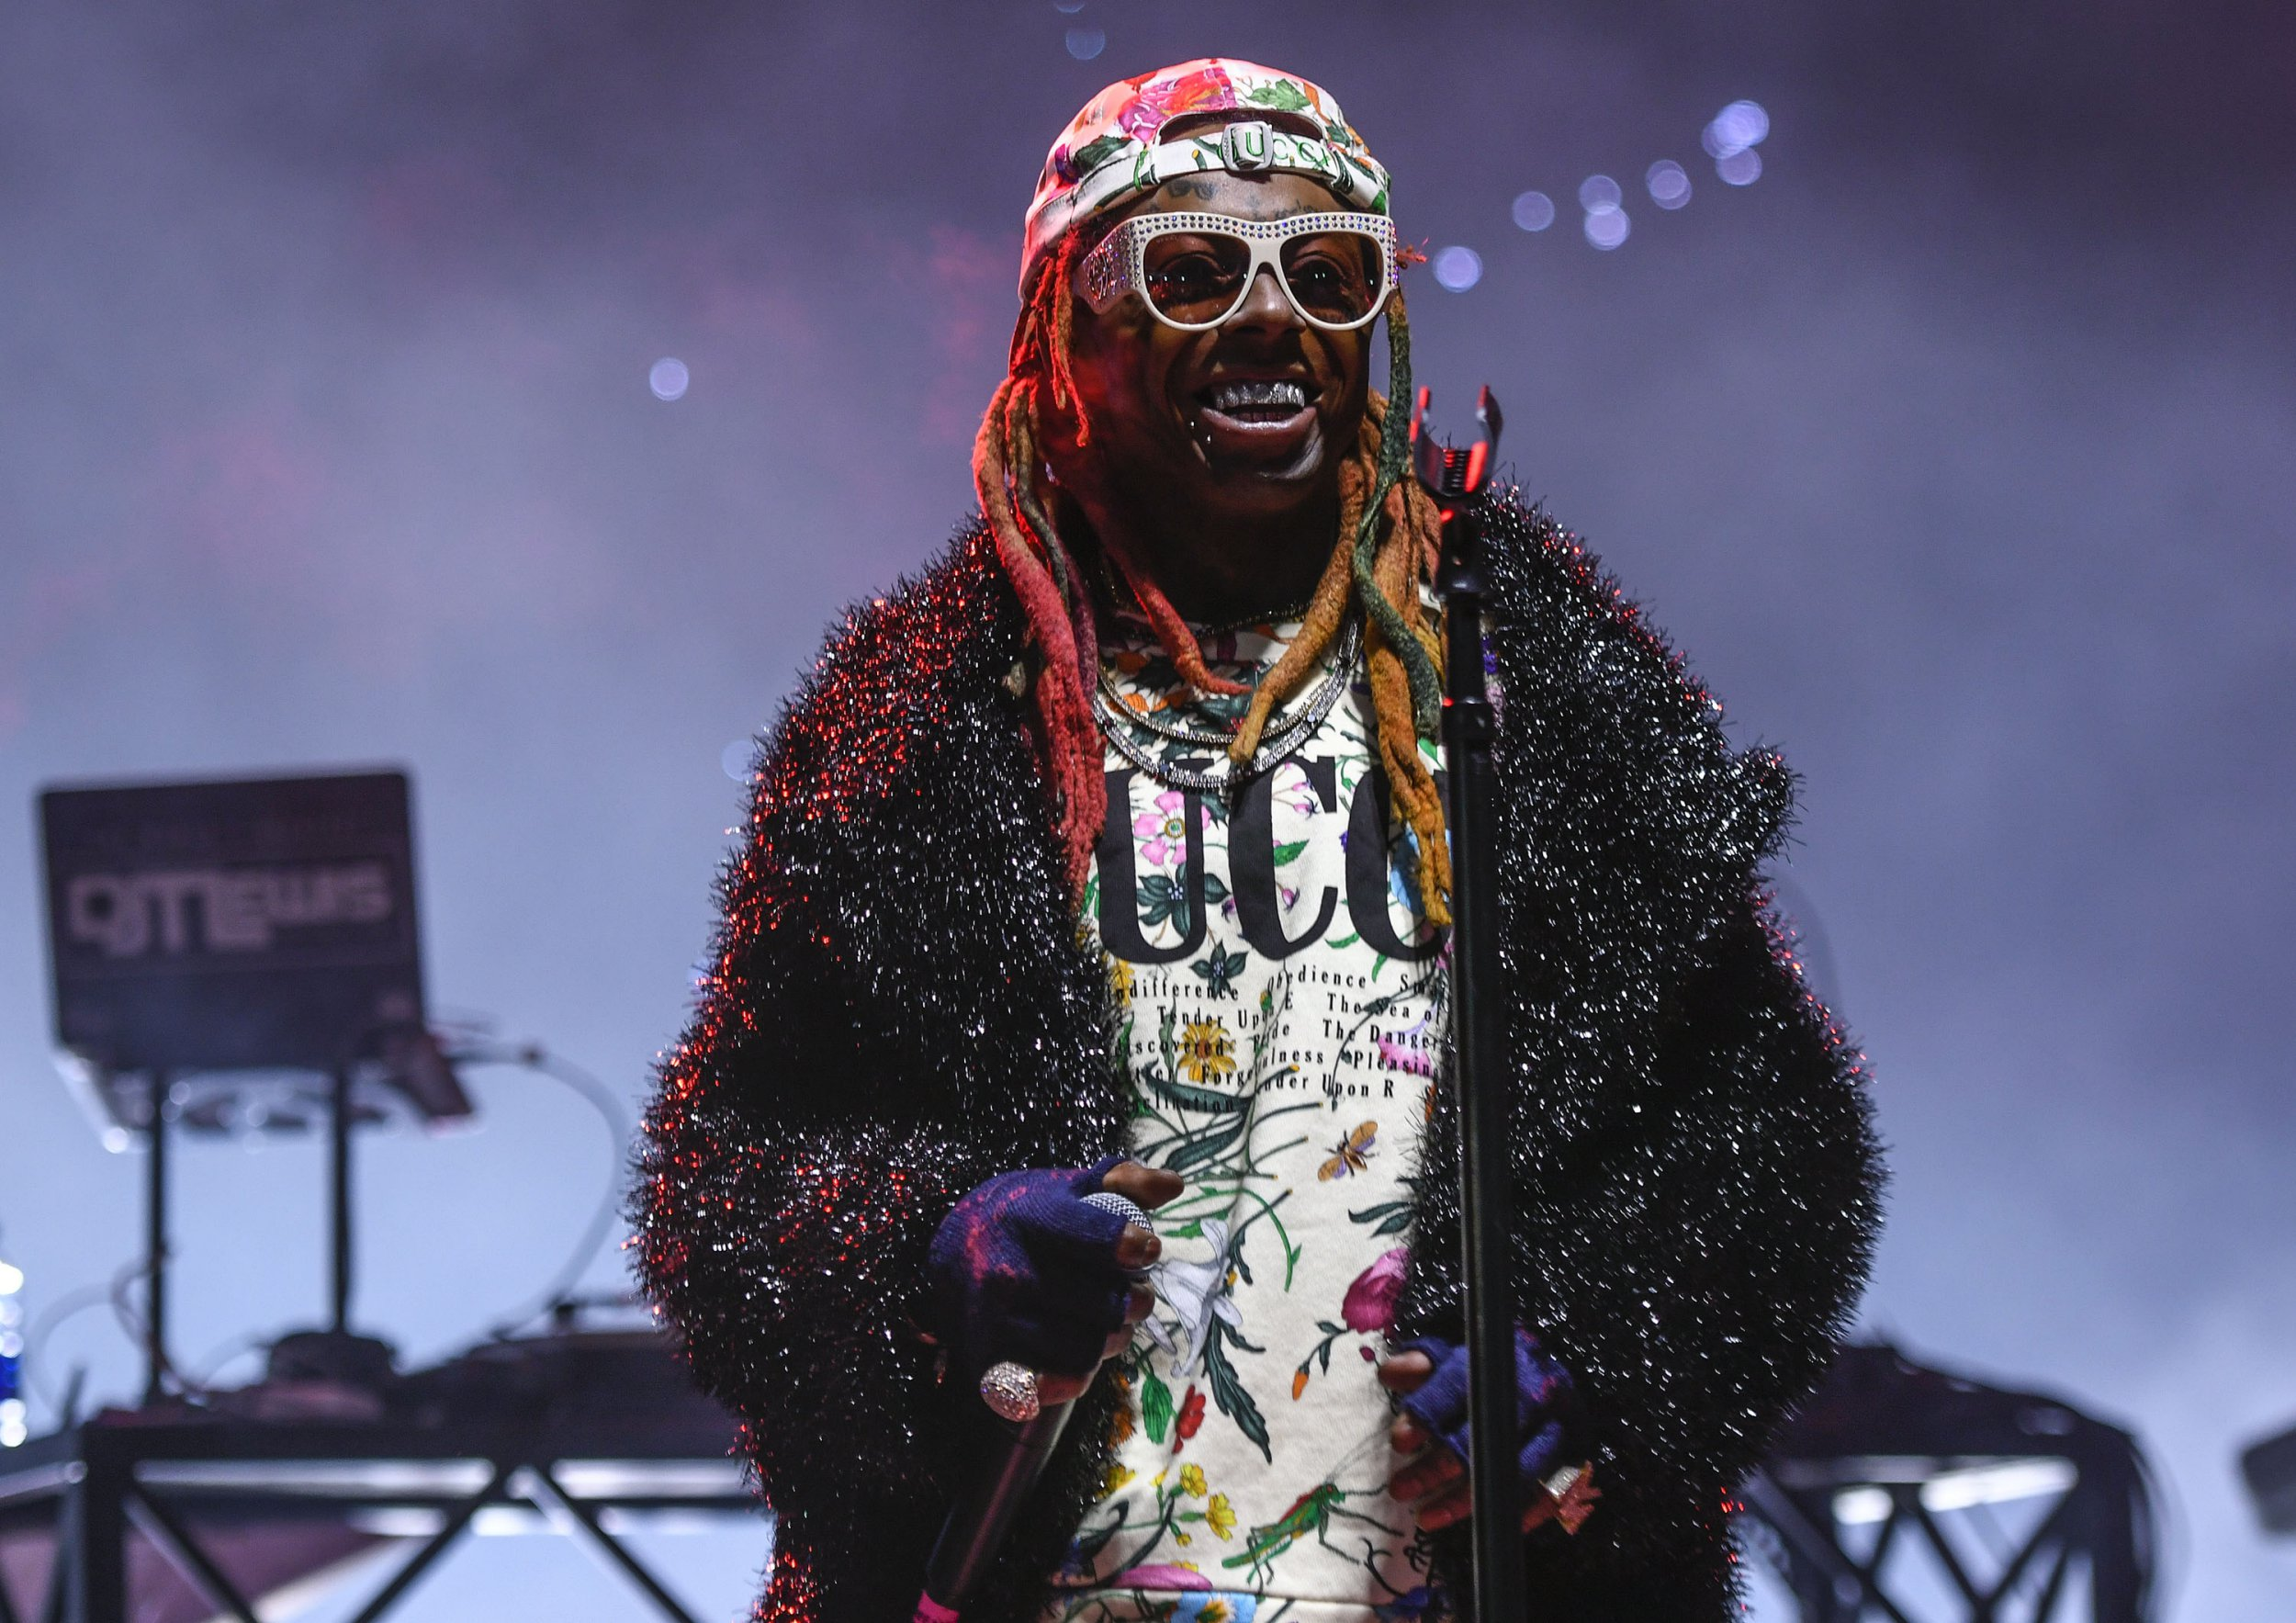 ASPEN, CO - JANUARY 25: Lil Wayne performs during X Games Aspen 2019 on January 25, 2019 in Aspen, Colorado. (Photo by Riccardo S. Savi/Getty Images)